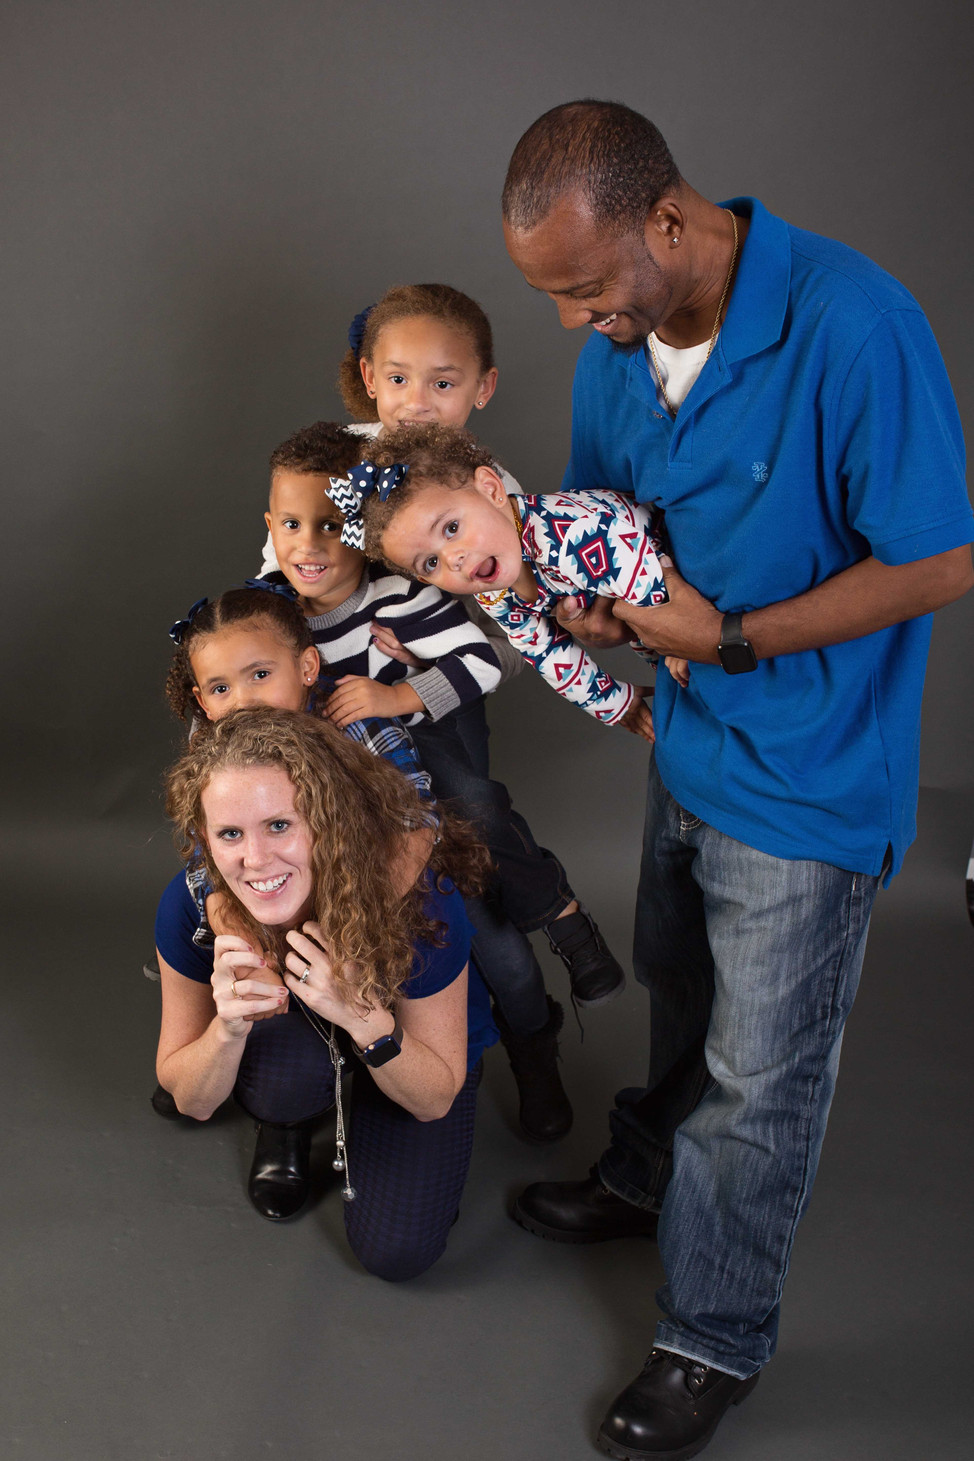 Family photo sessions. The good, the bad and the hilarious.